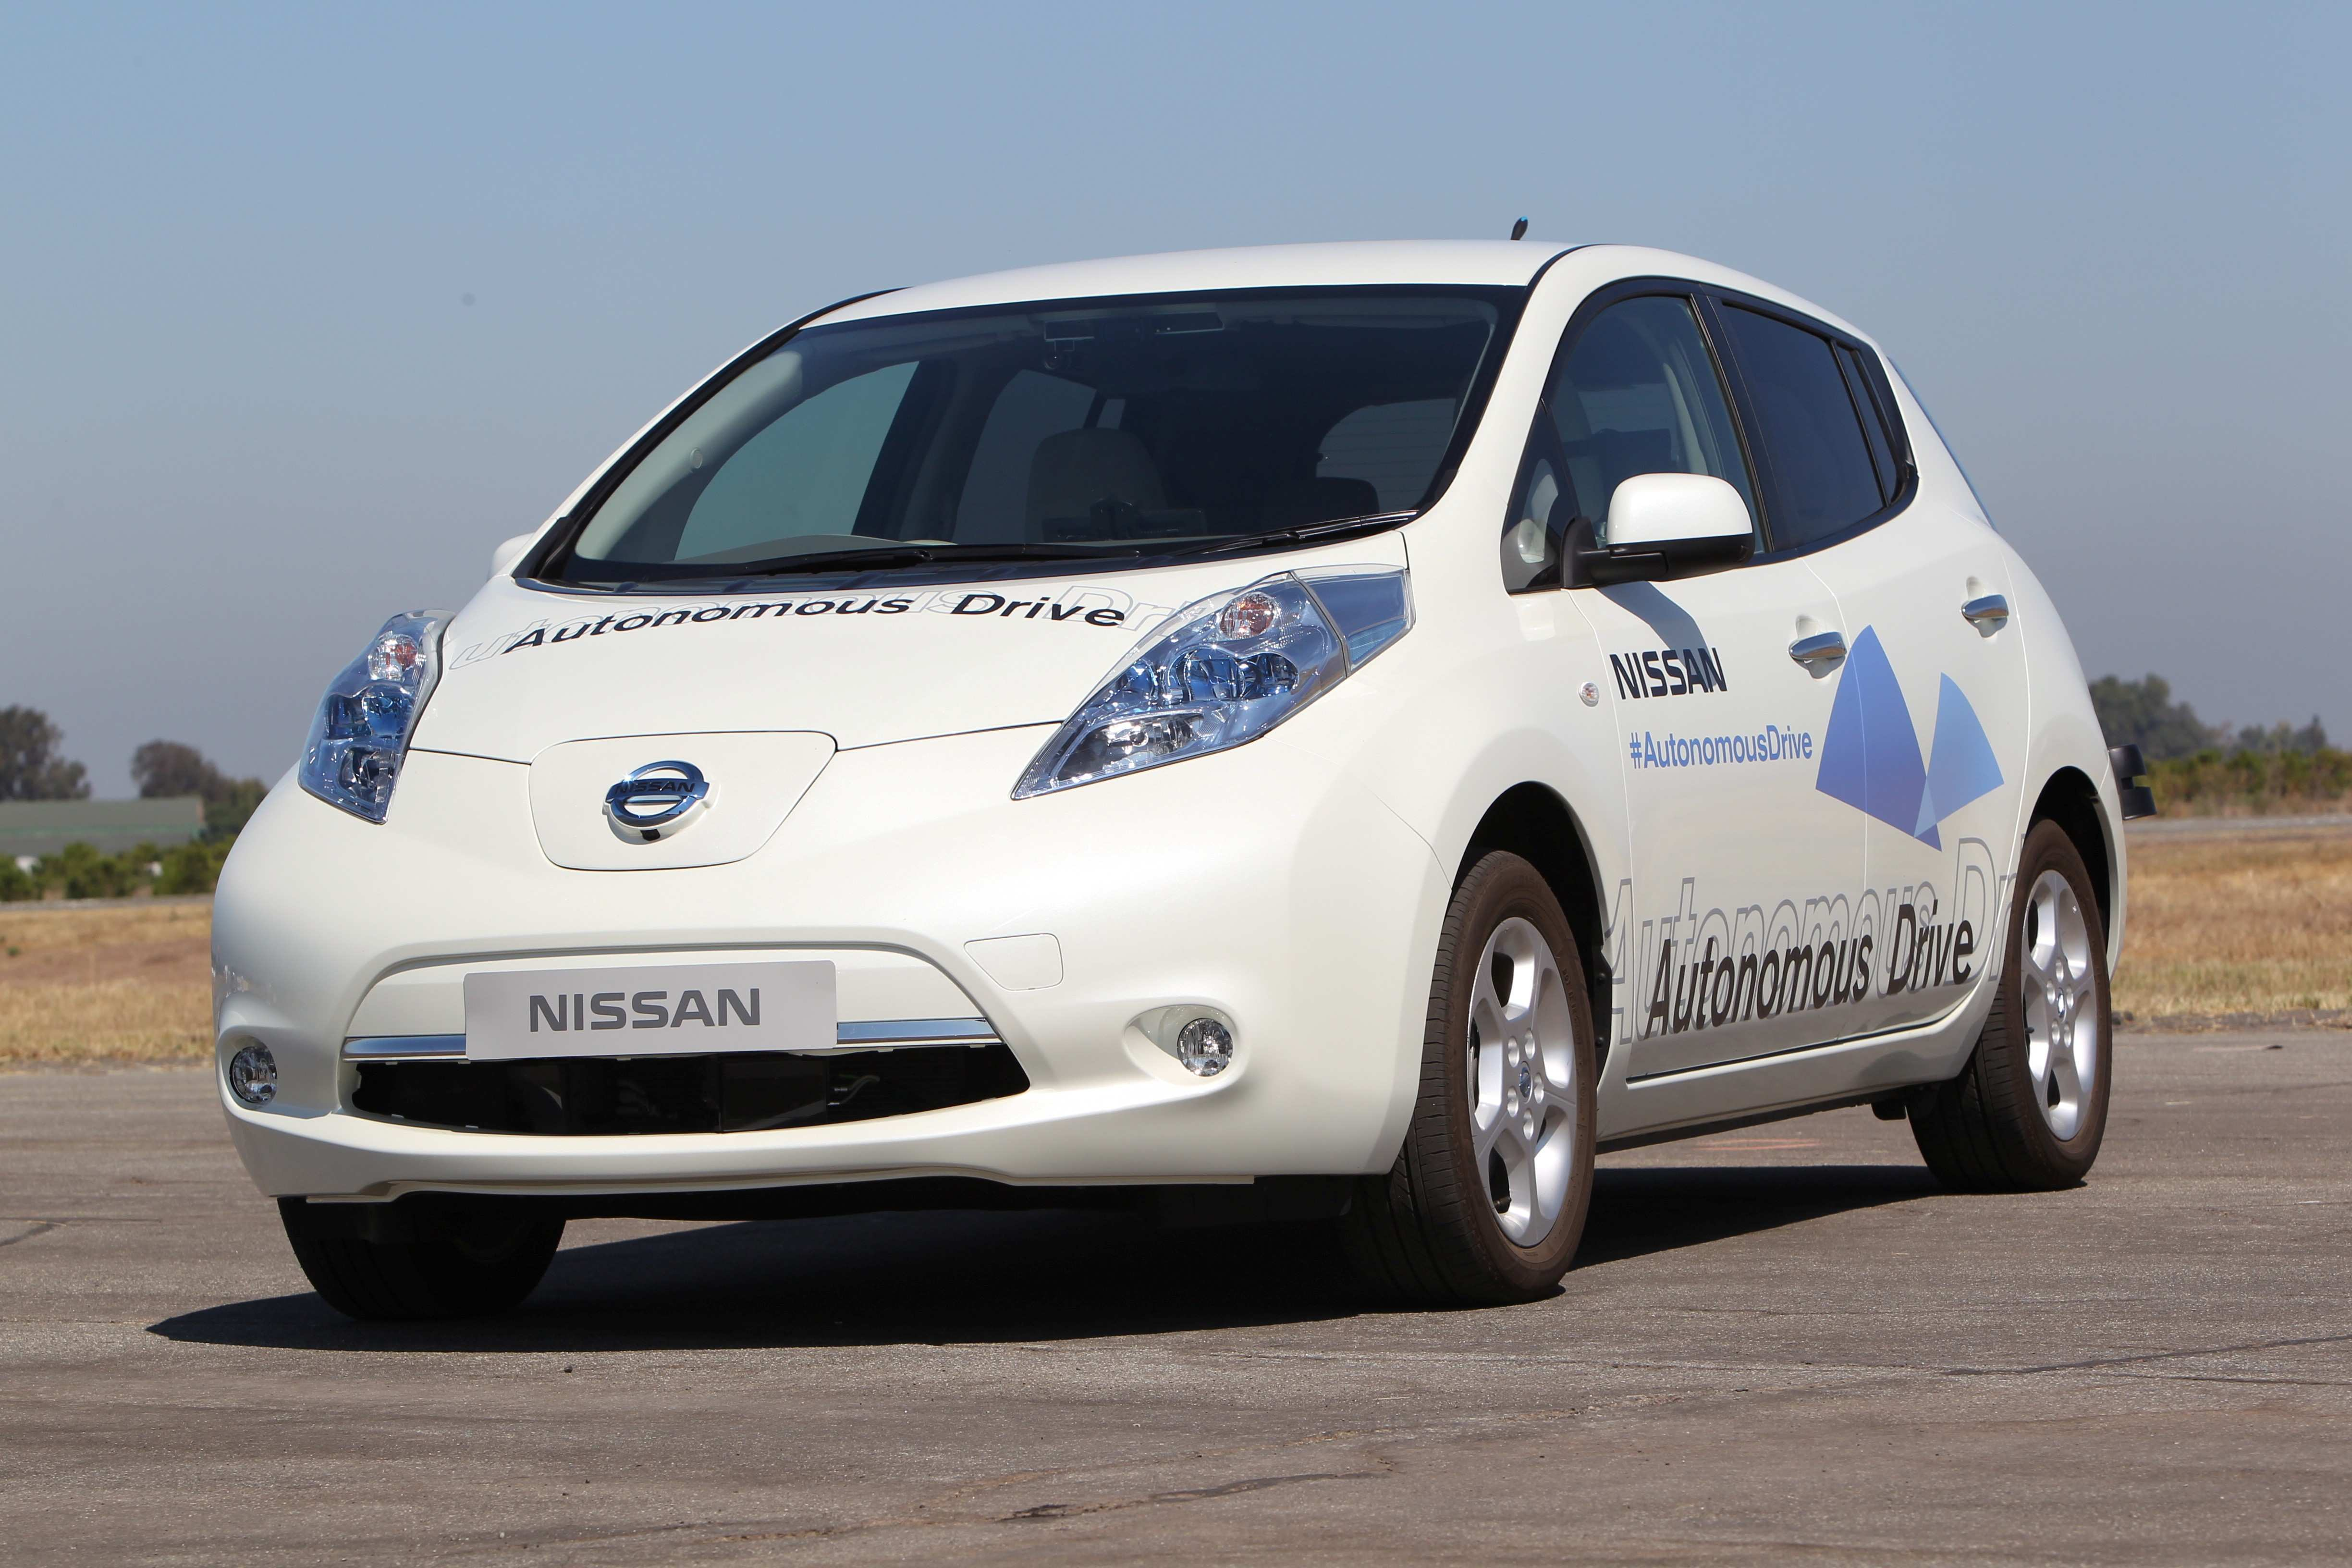 26 New Nissan Driverless Car 2020 Images